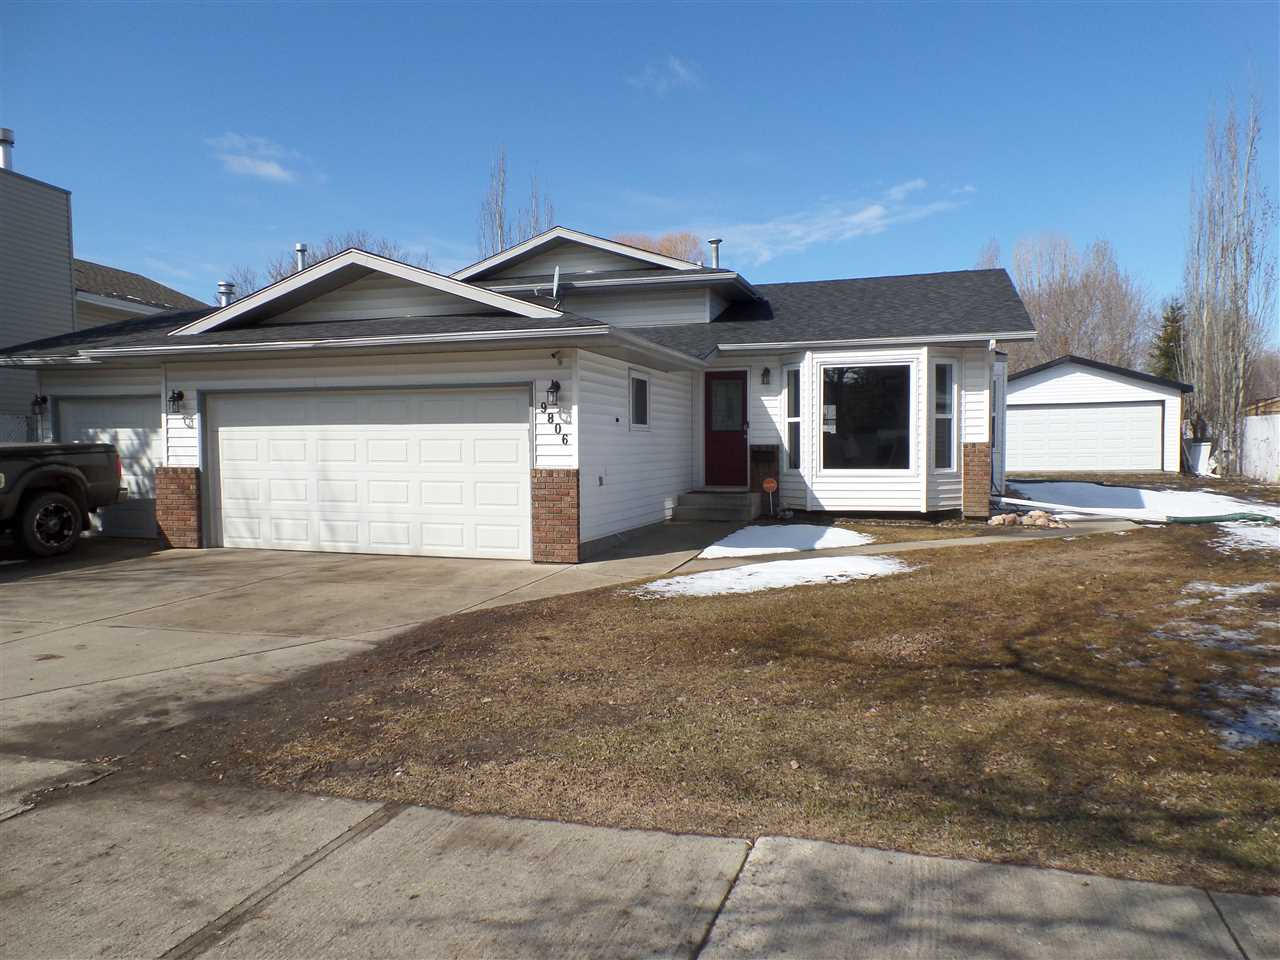 Main Photo: 9806 82 Street: Fort Saskatchewan House for sale : MLS(r) # E4059991